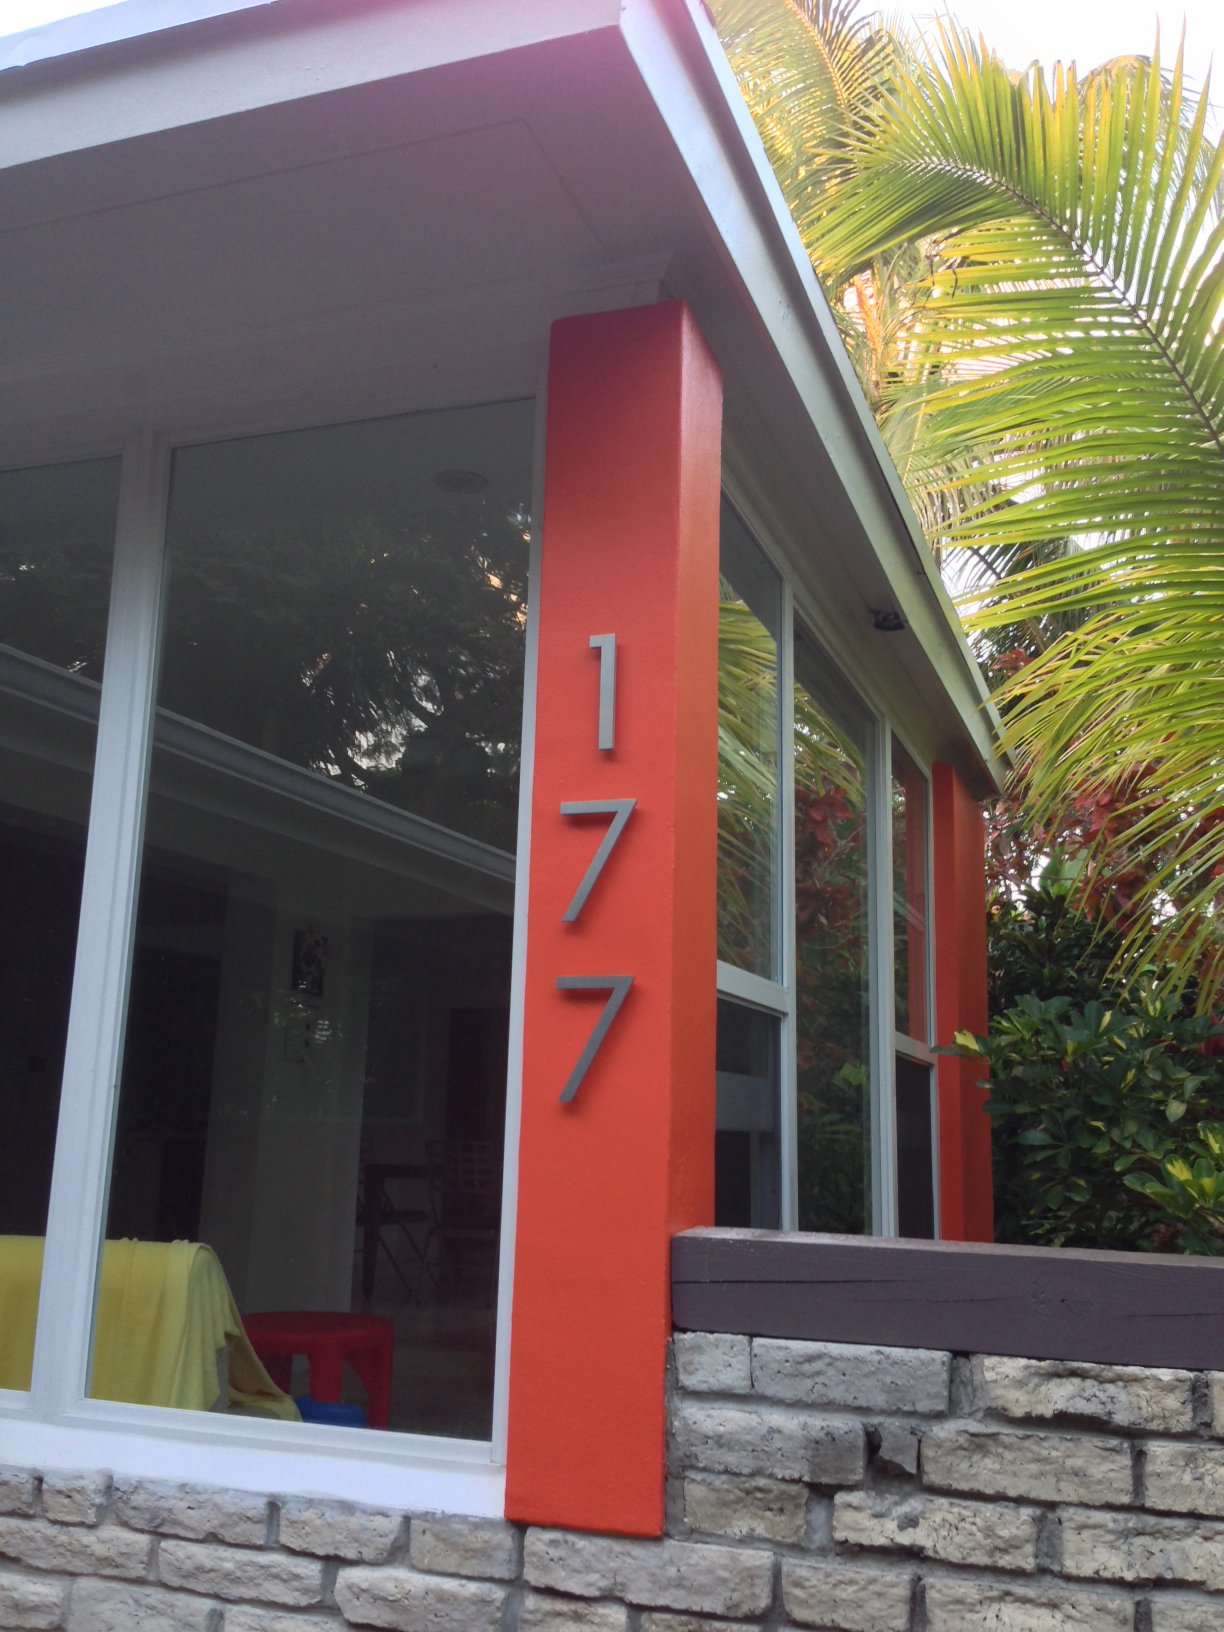 Modern house numbers on orange post